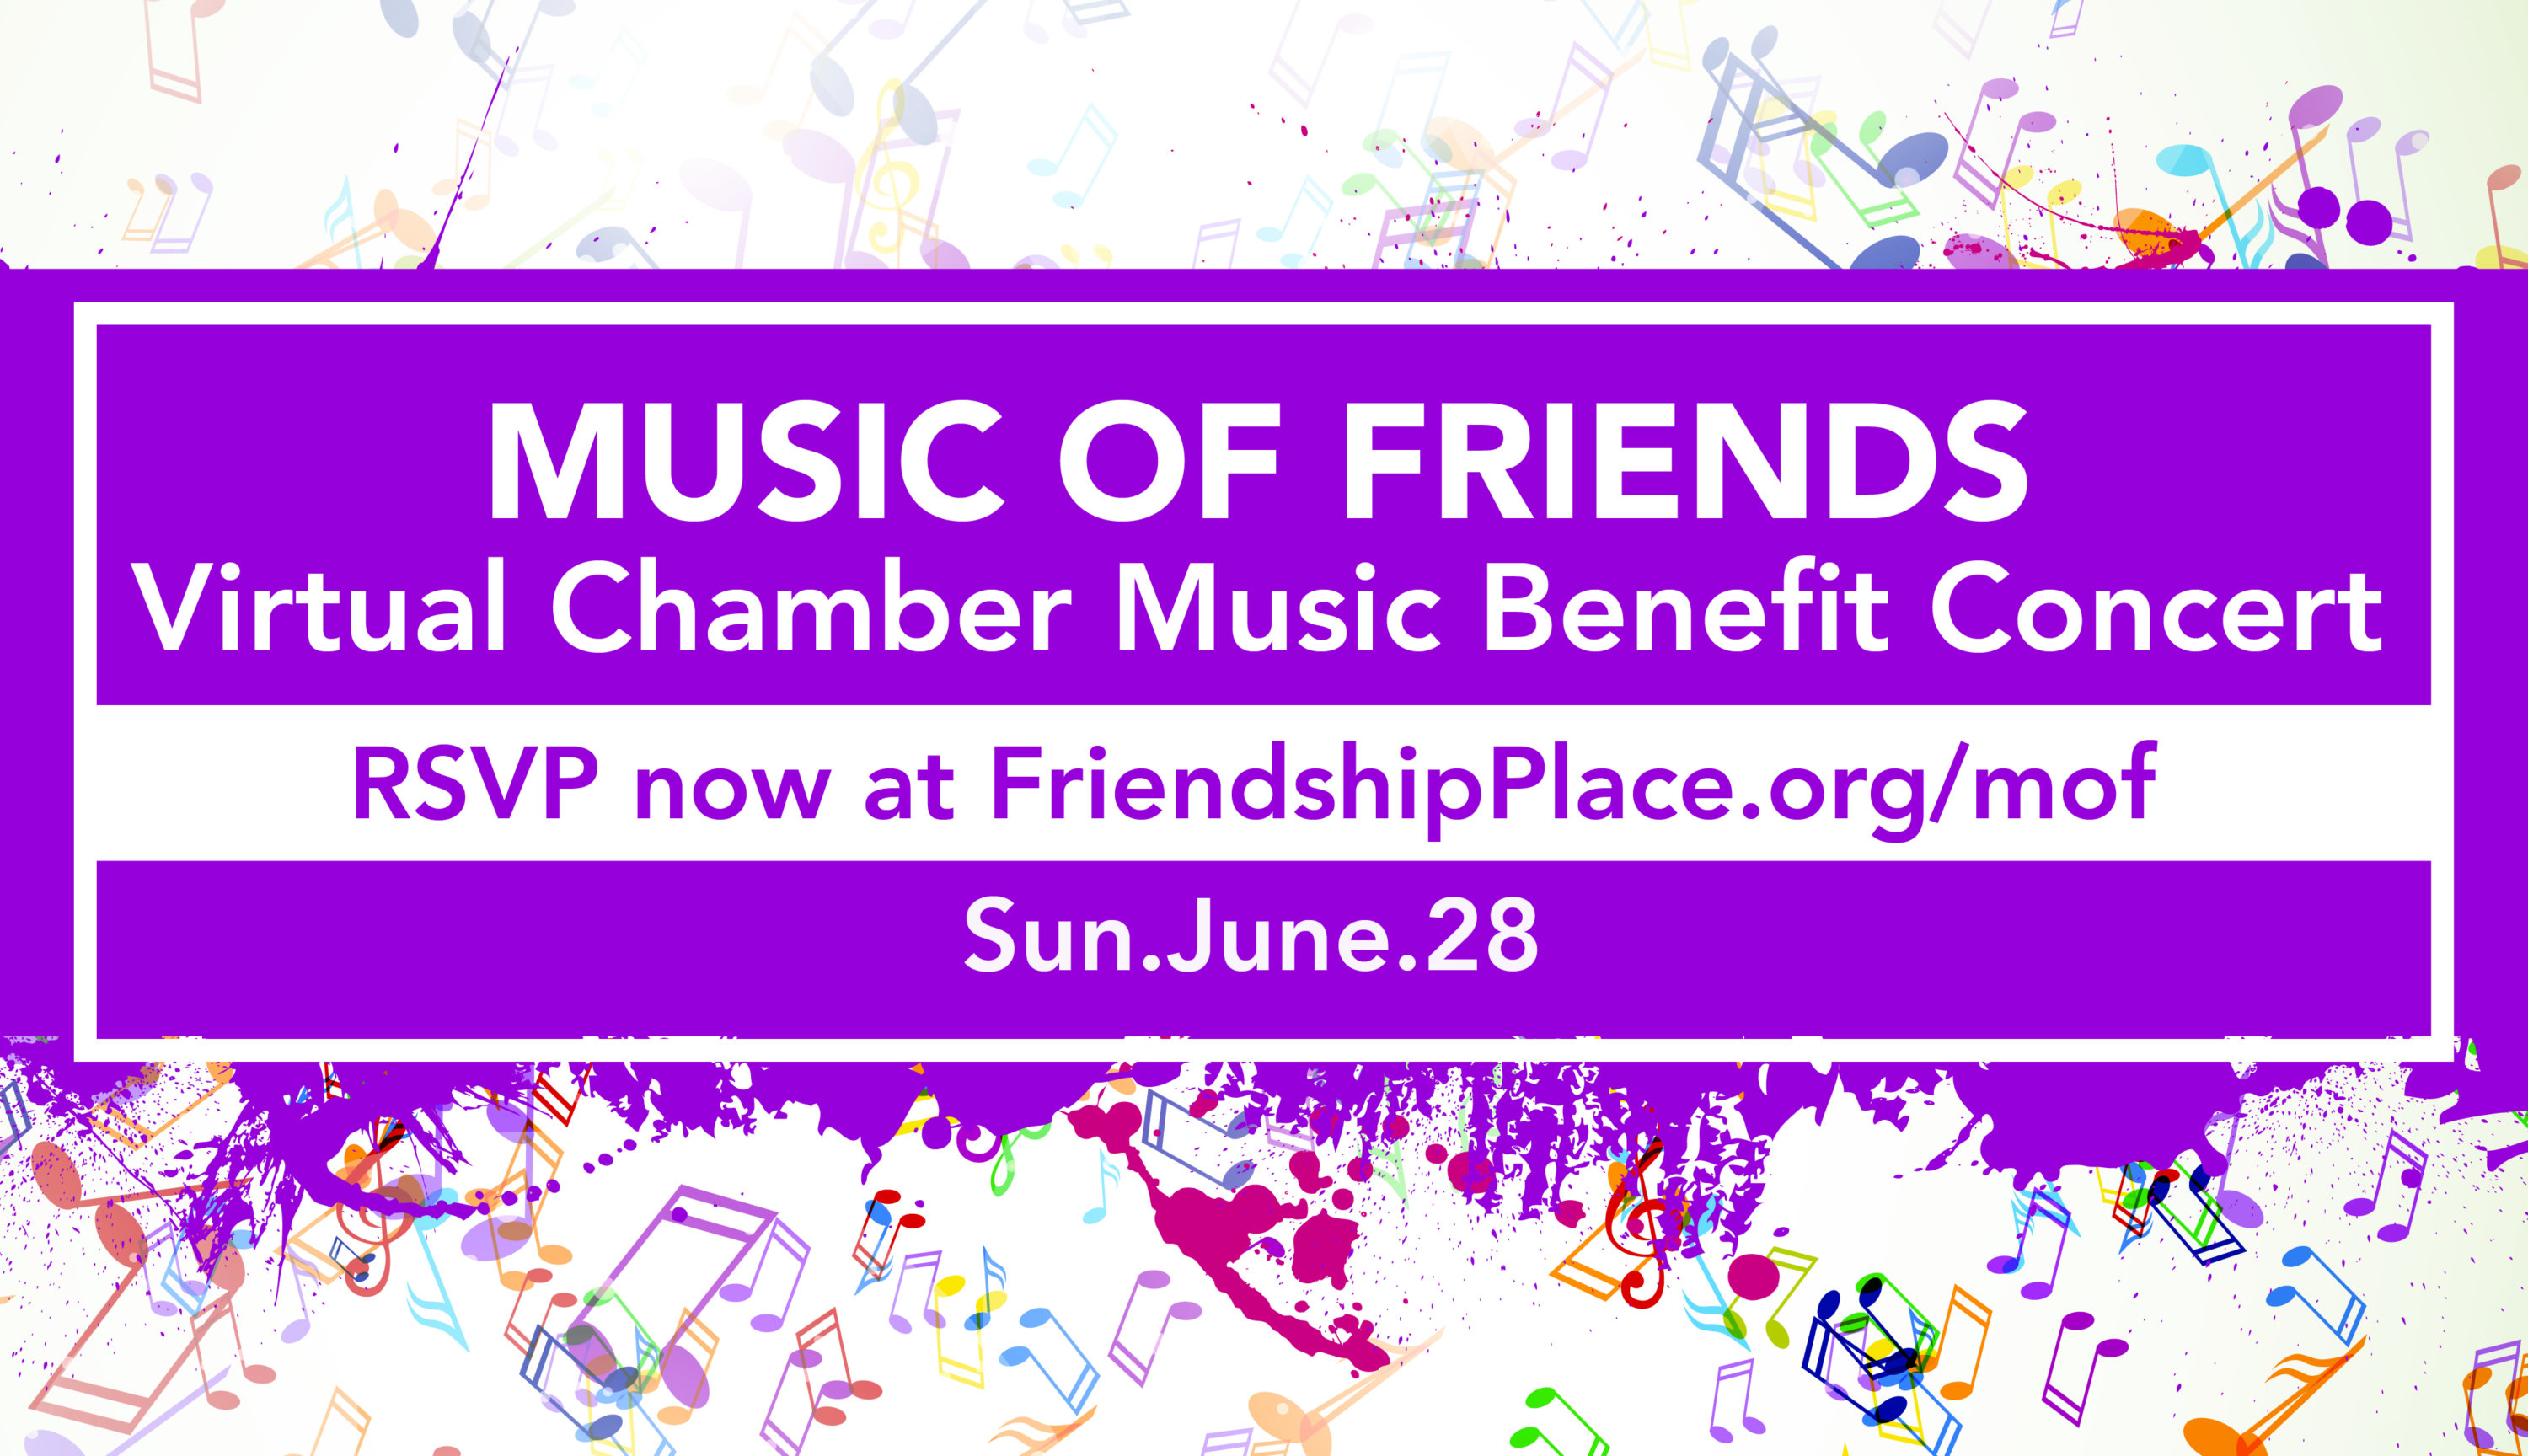 Music of Friends Virtual Chamber Music Concert